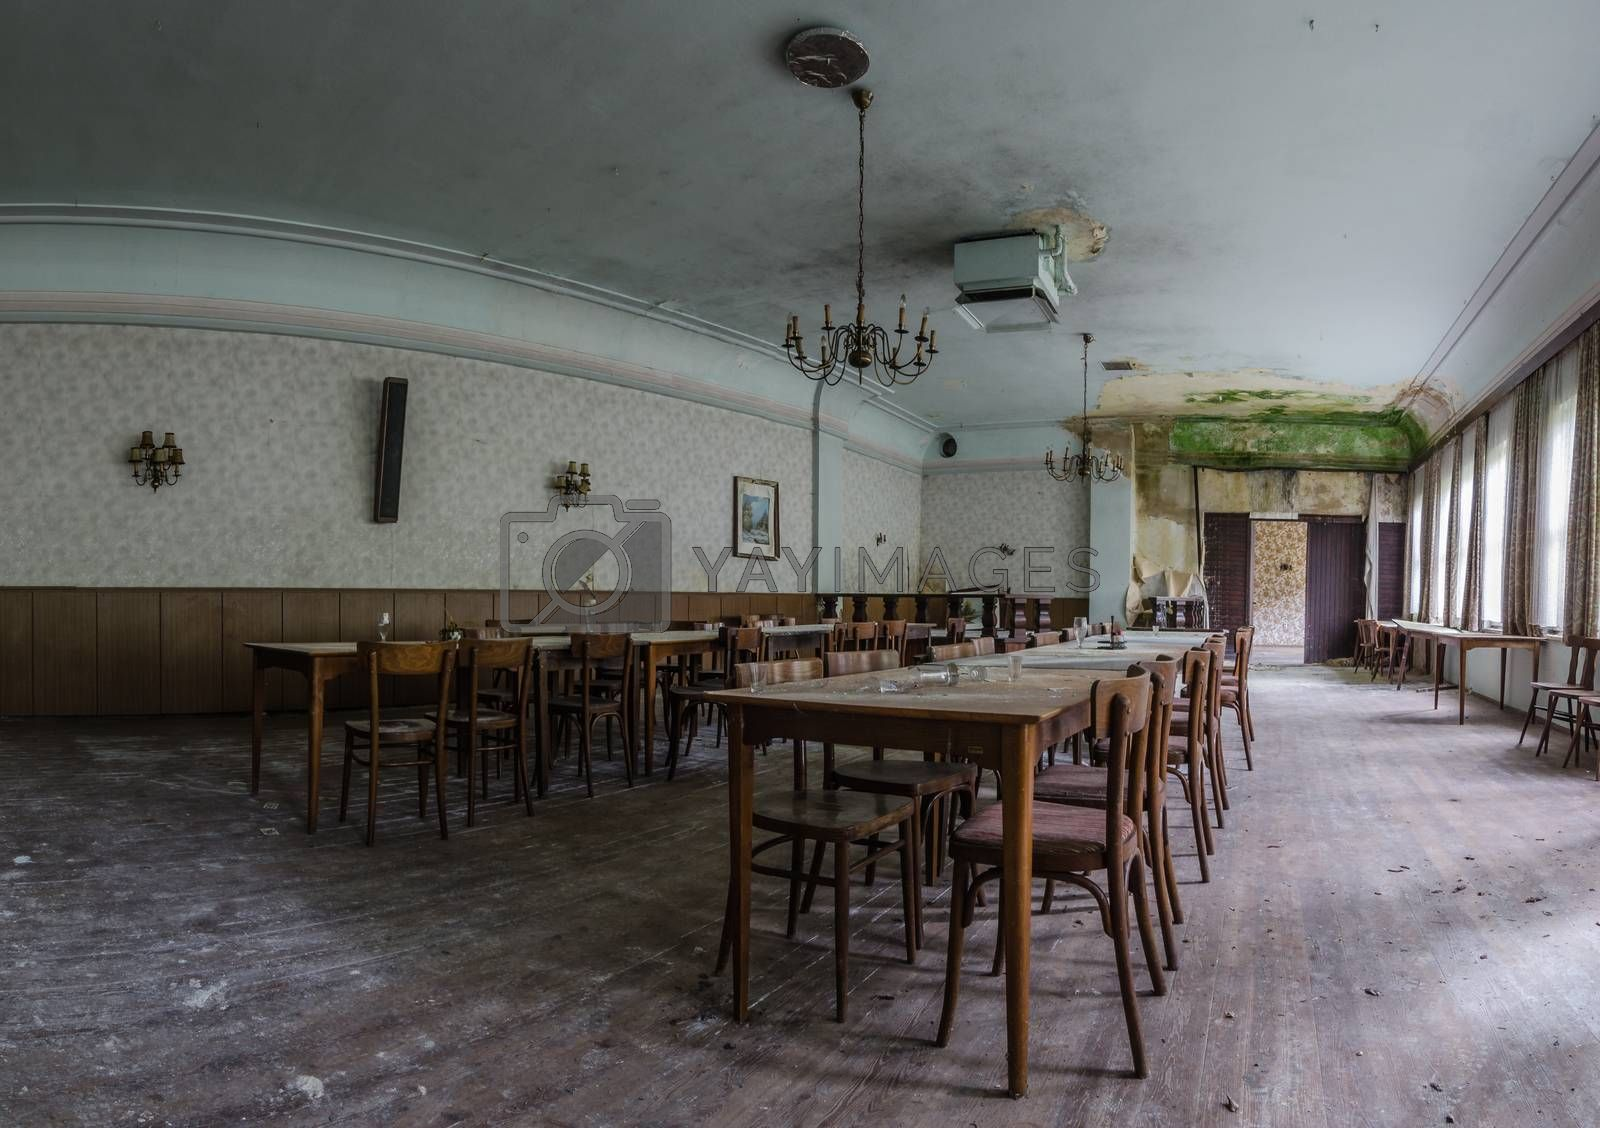 many armchairs and tables in abandoned inn panorama view